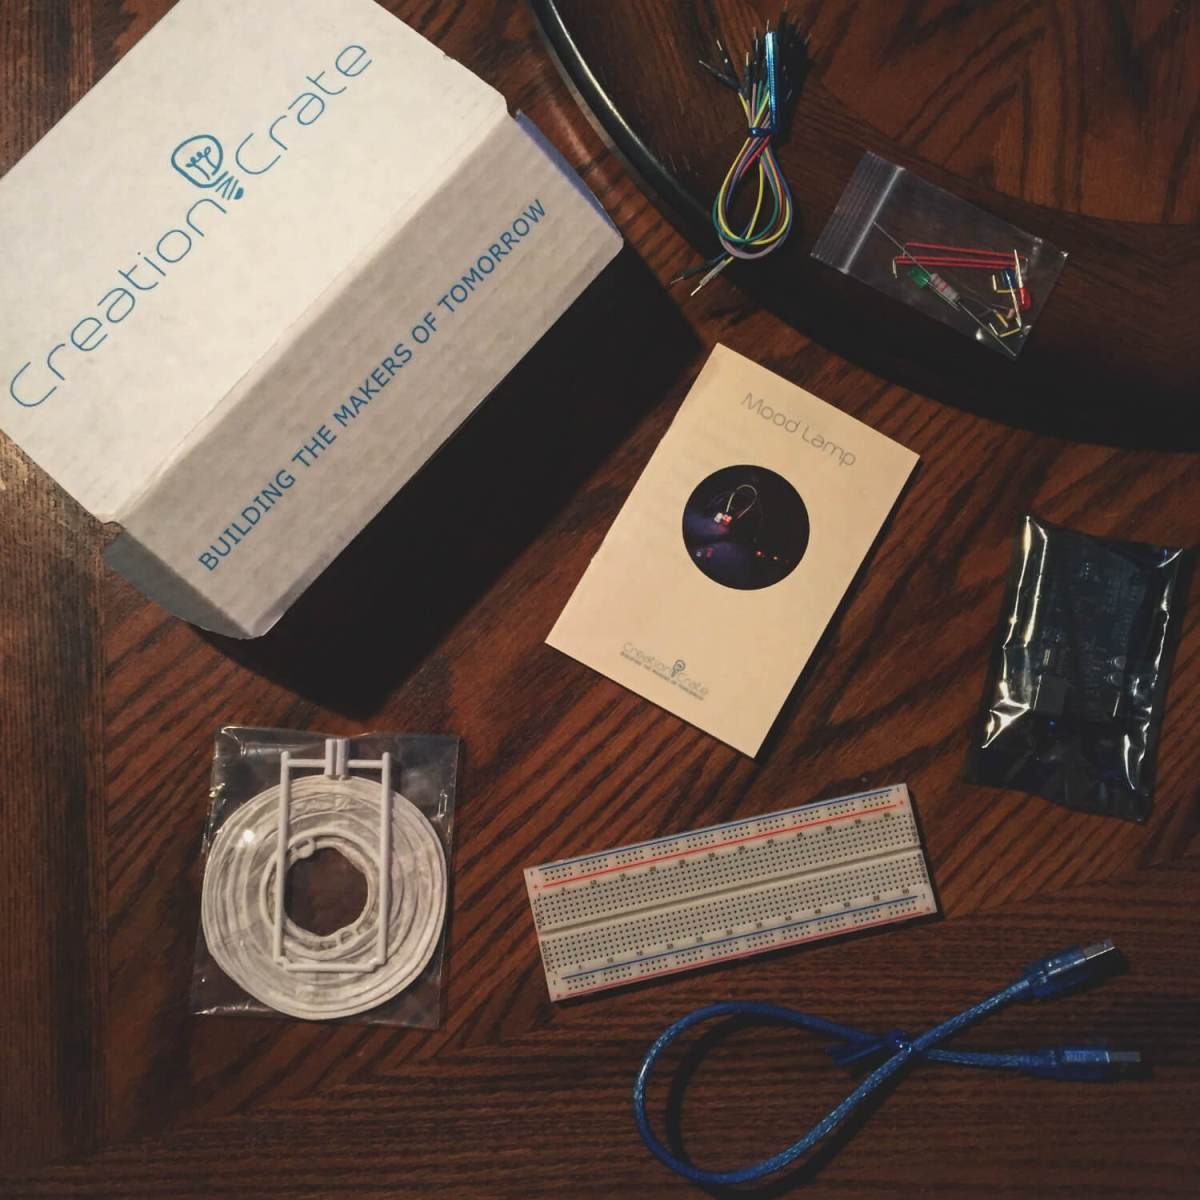 Review + Giveaway: Creation Crate (Tech Education In A Box)